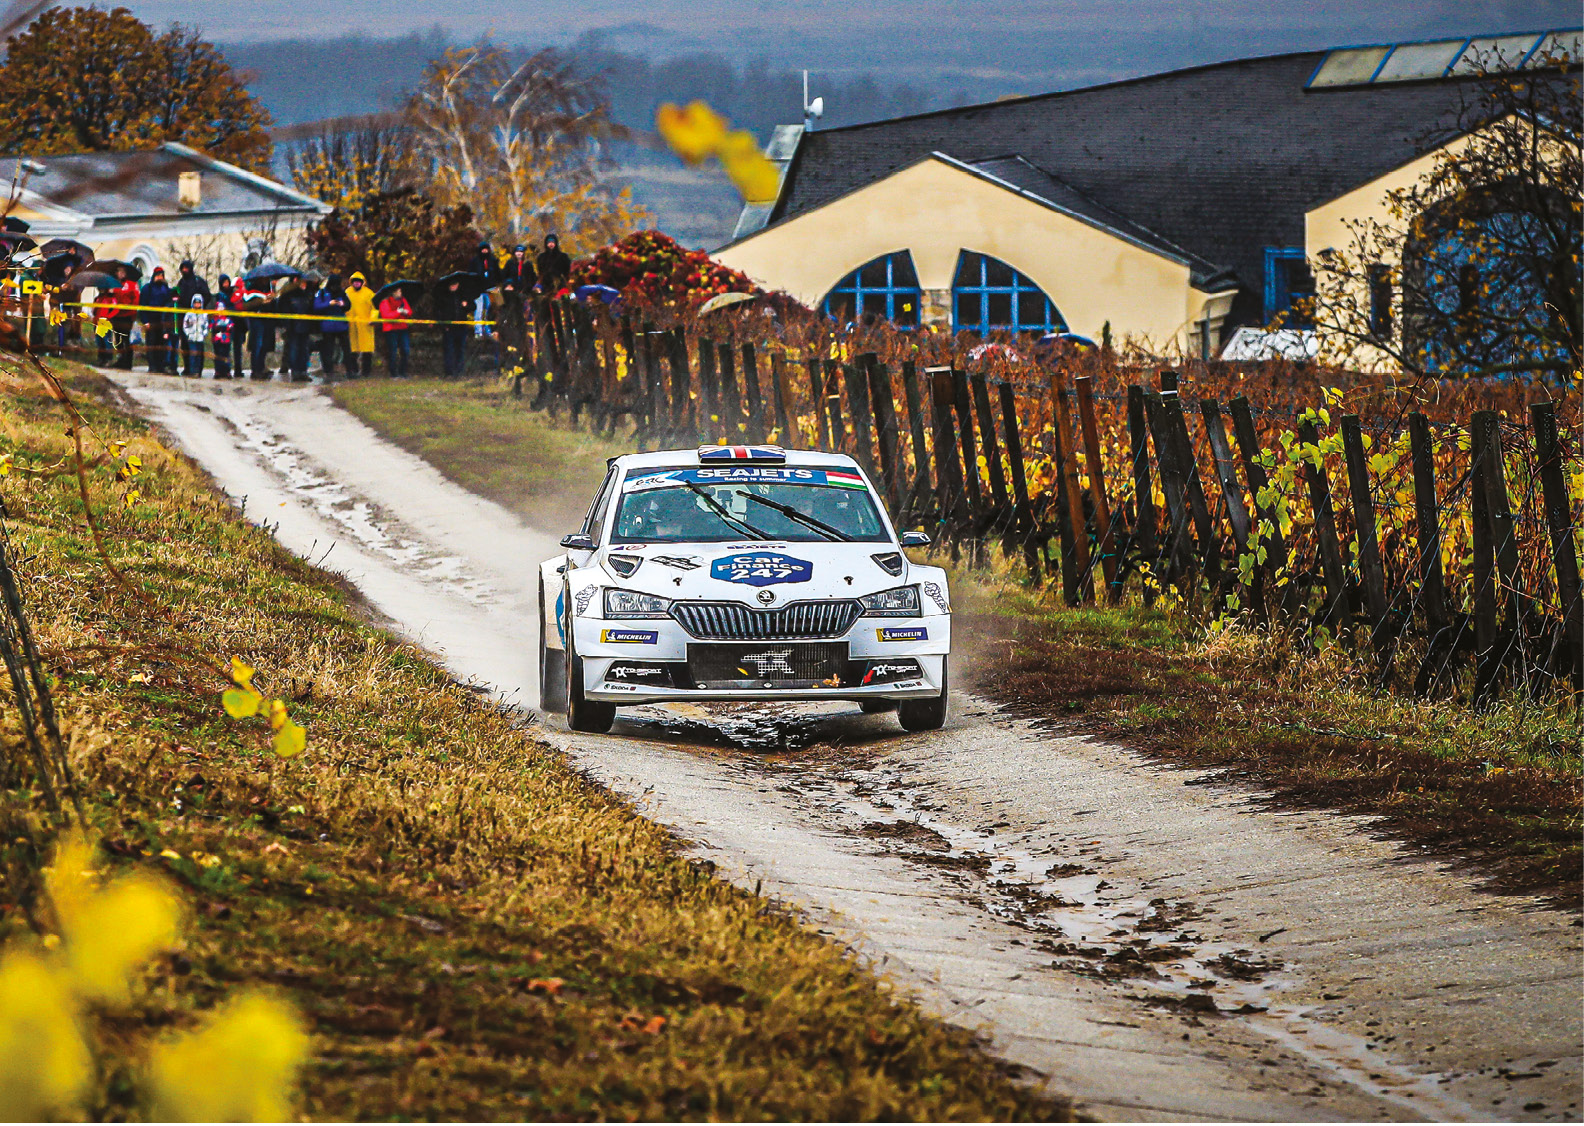 Škoda driver Chris Ingram brought the ERC title back to Britain for the first time in 52 years